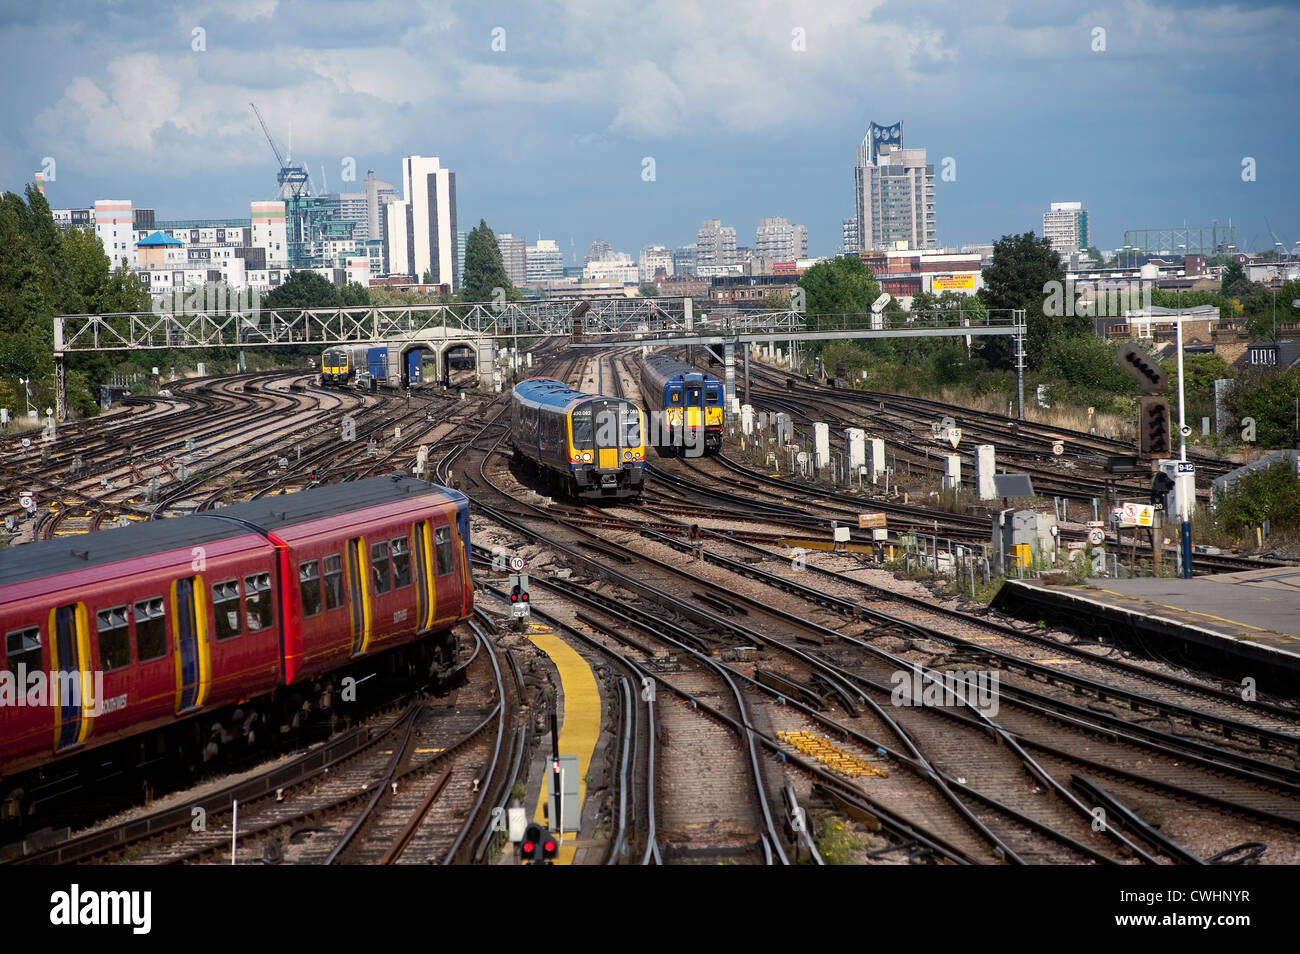 Various trains at Clapham Junction, one of the busiest railway junctions in England. - Stock Image